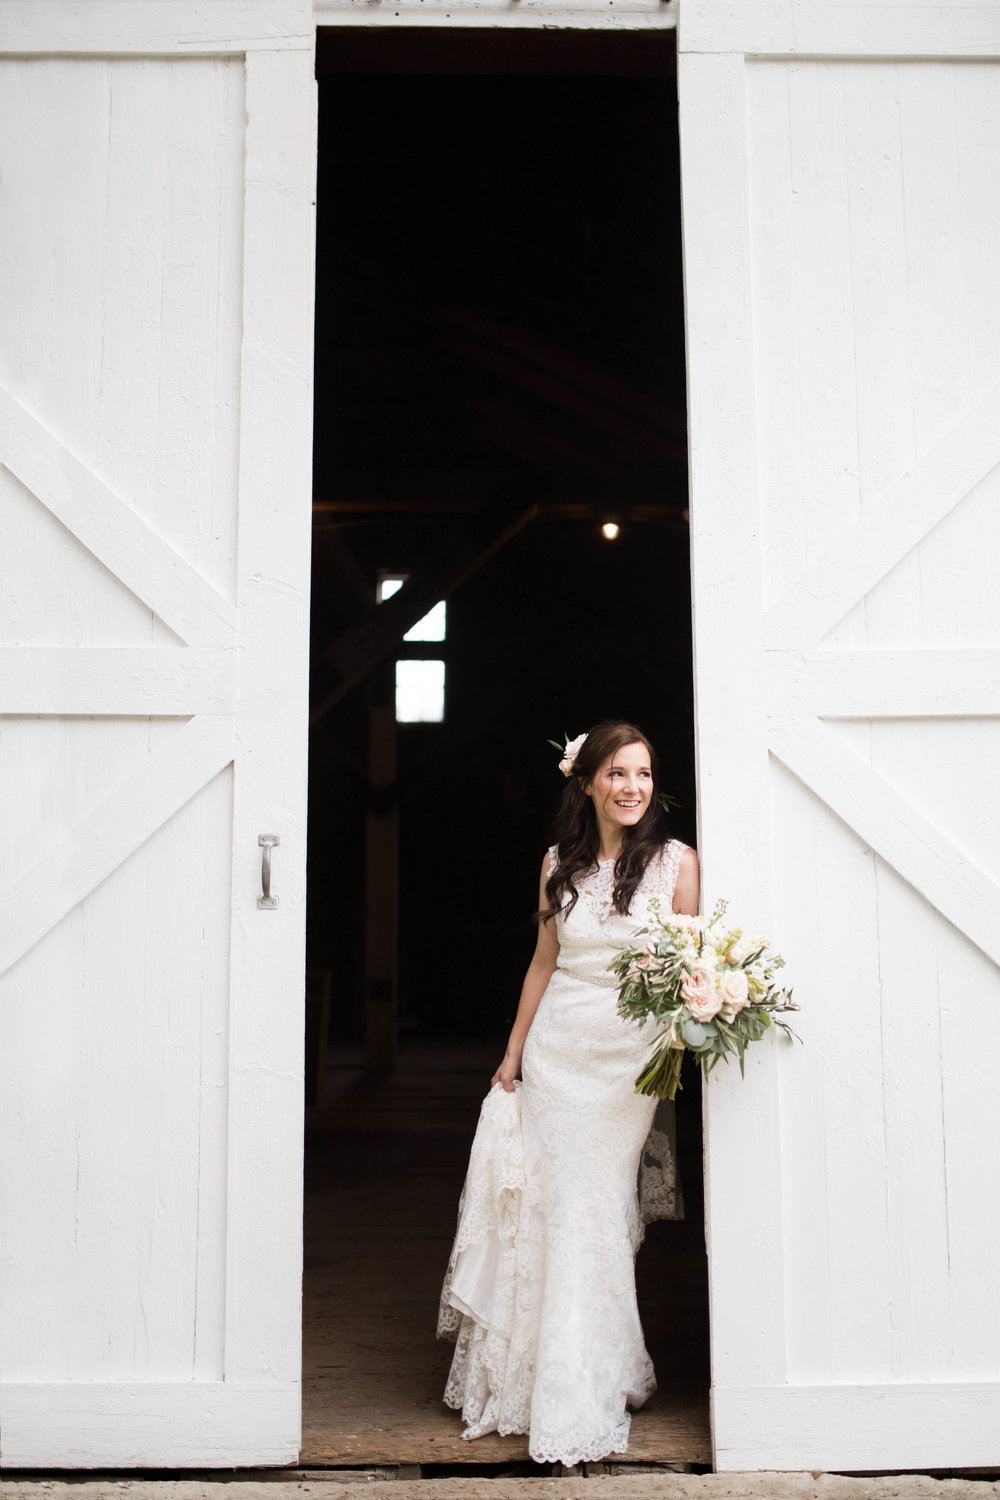 bride standing in the barn doors | Minnesota wedding photographer Studio KH wedding dress details | wedding blog | Sixpence Events 70 Ways to Photograph Your Wedding Dress.jpg